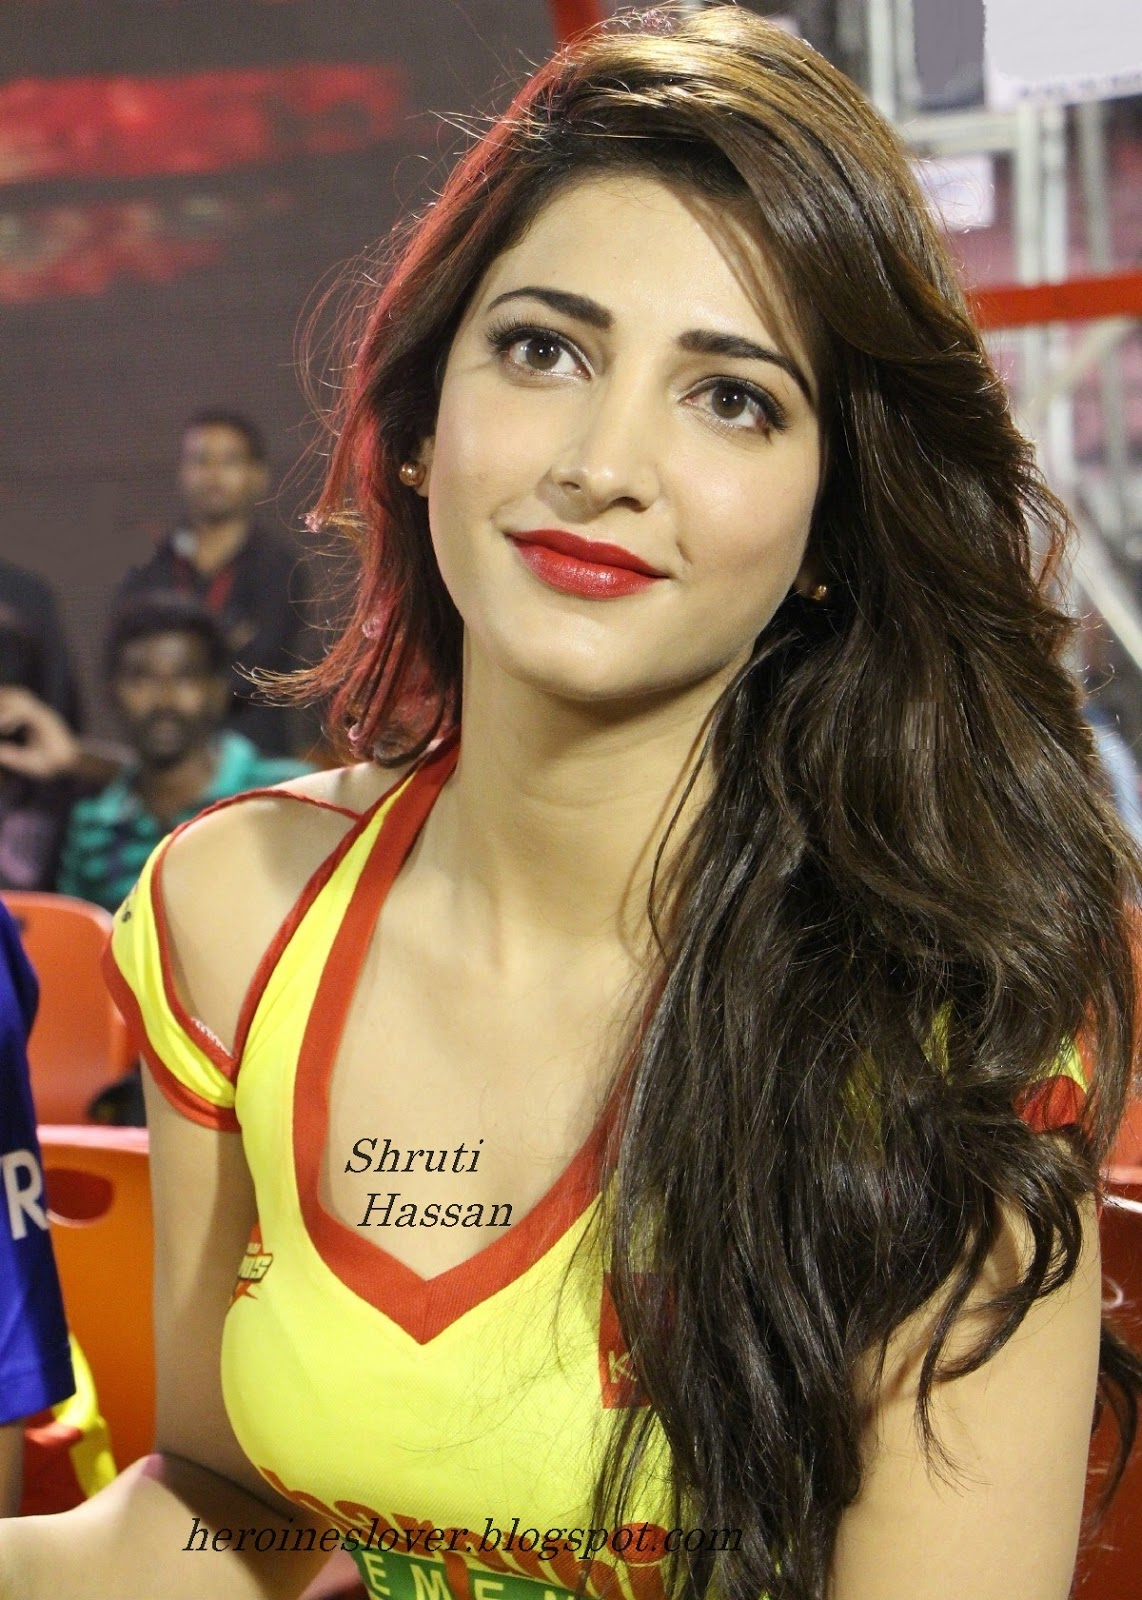 http://1.bp.blogspot.com/-ahpwXvWNnYU/UWxb4S-ywoI/AAAAAAAAAa0/XS2sZdJs04w/s1600/actress-shruti-hassan-hot-photos+1.jpg